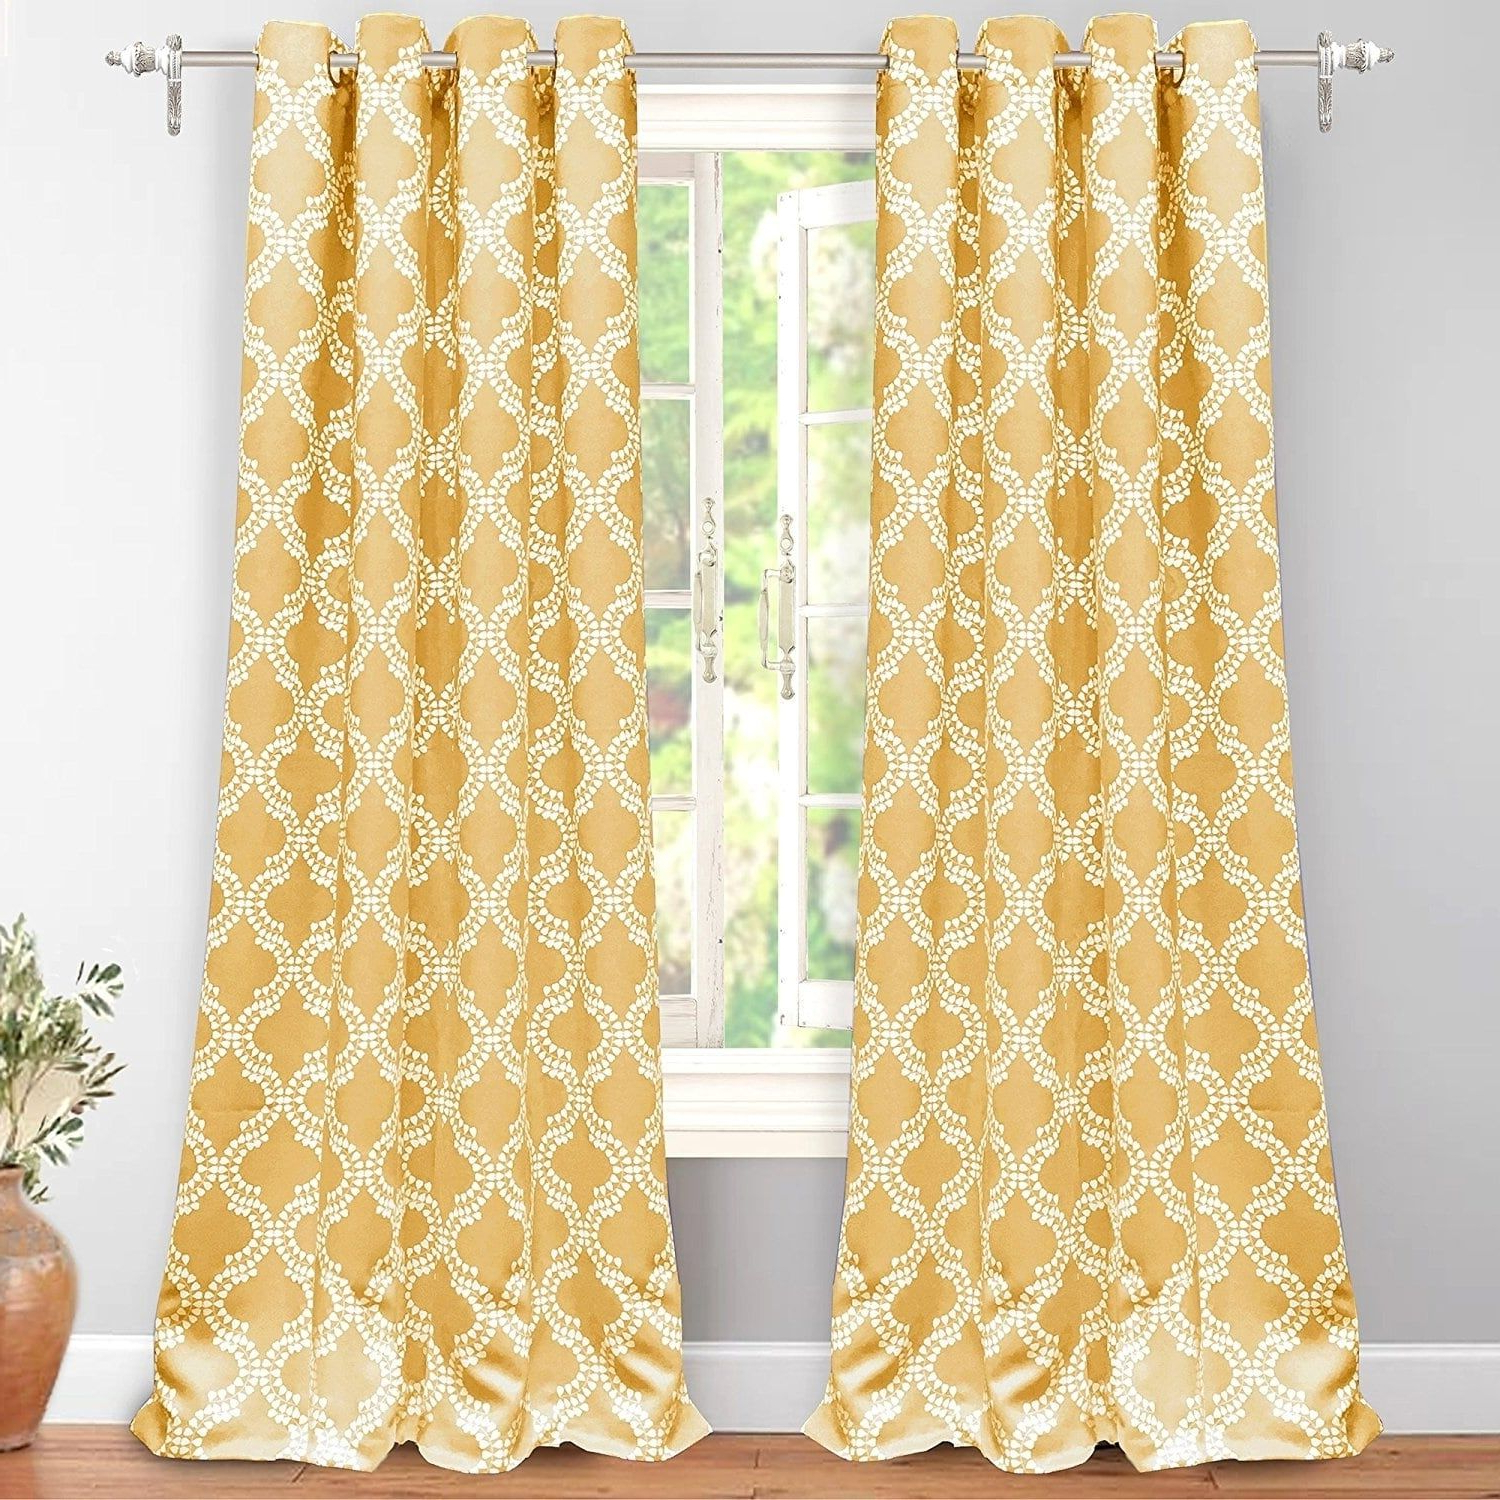 Most Current Insulated Blackout Grommet Window Curtain Panel Pairs Inside Driftaway Julianna Geometric Printed Thermal Insulated (Gallery 15 of 20)